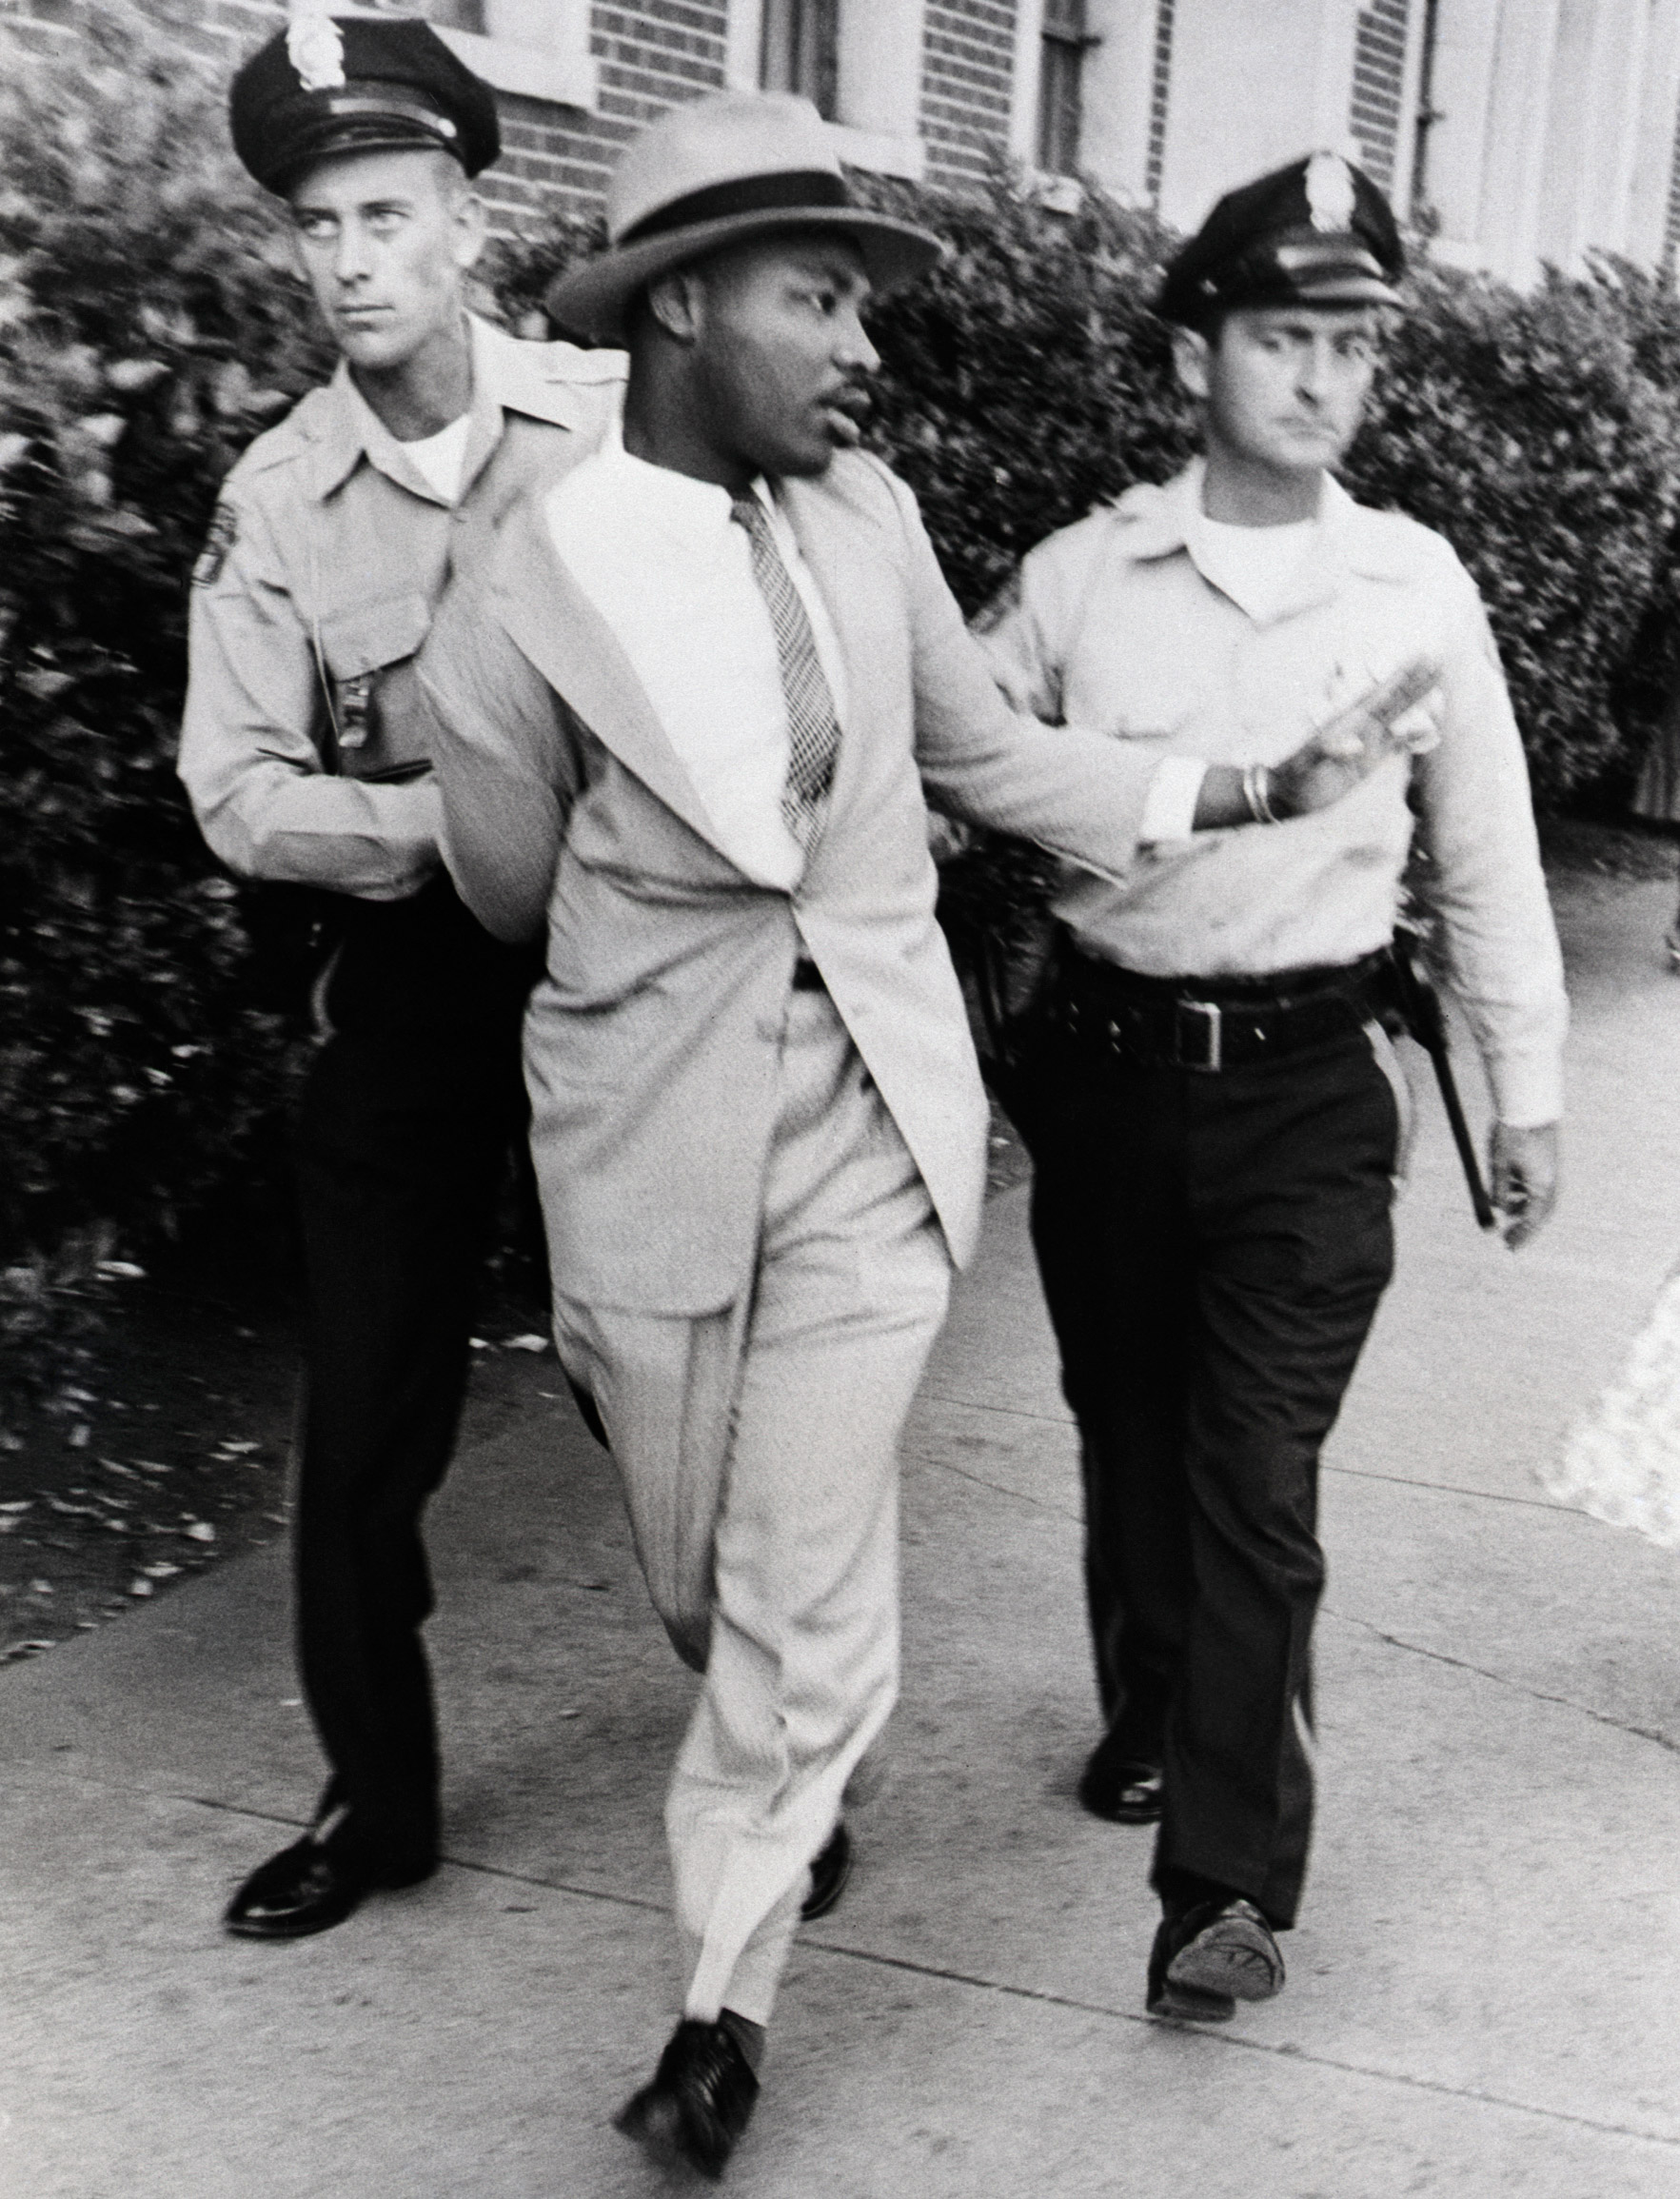 Police officers O.M. Strickland and J.V. Johnson apply force in arresting the Reverend Martin Luther King for loitering near a courtroom where one of his integration lieutenants was on the stand. King charged he was beaten and choked by the arresting officers. Police denied the charges. 1958.